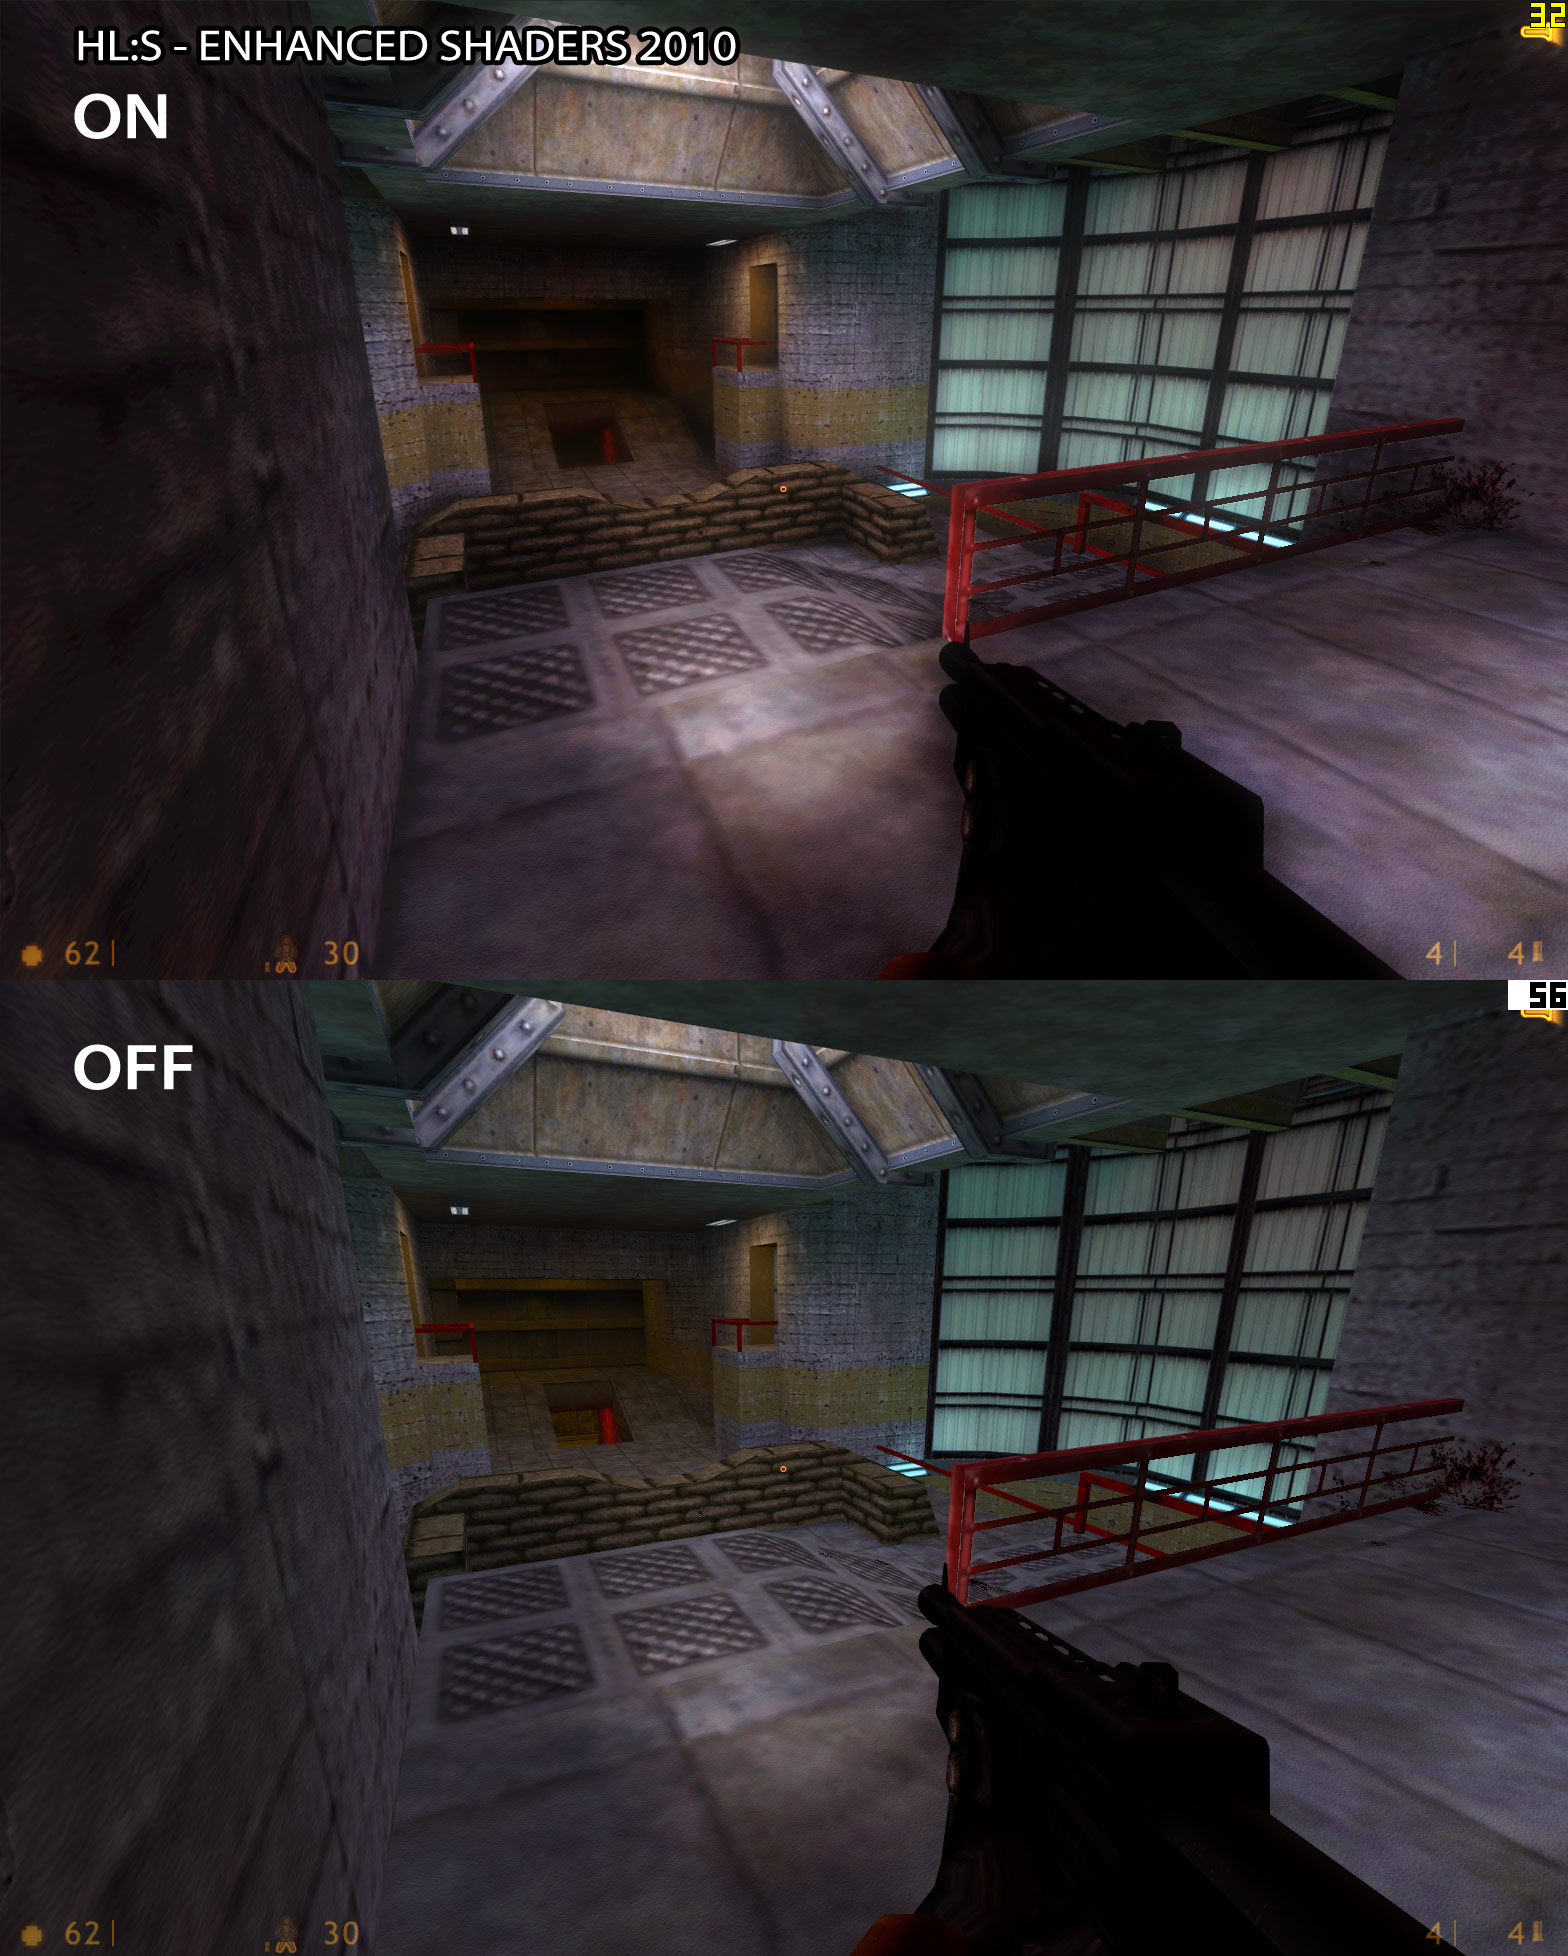 hl s - enhanced shaders 2010 - comparison image 3